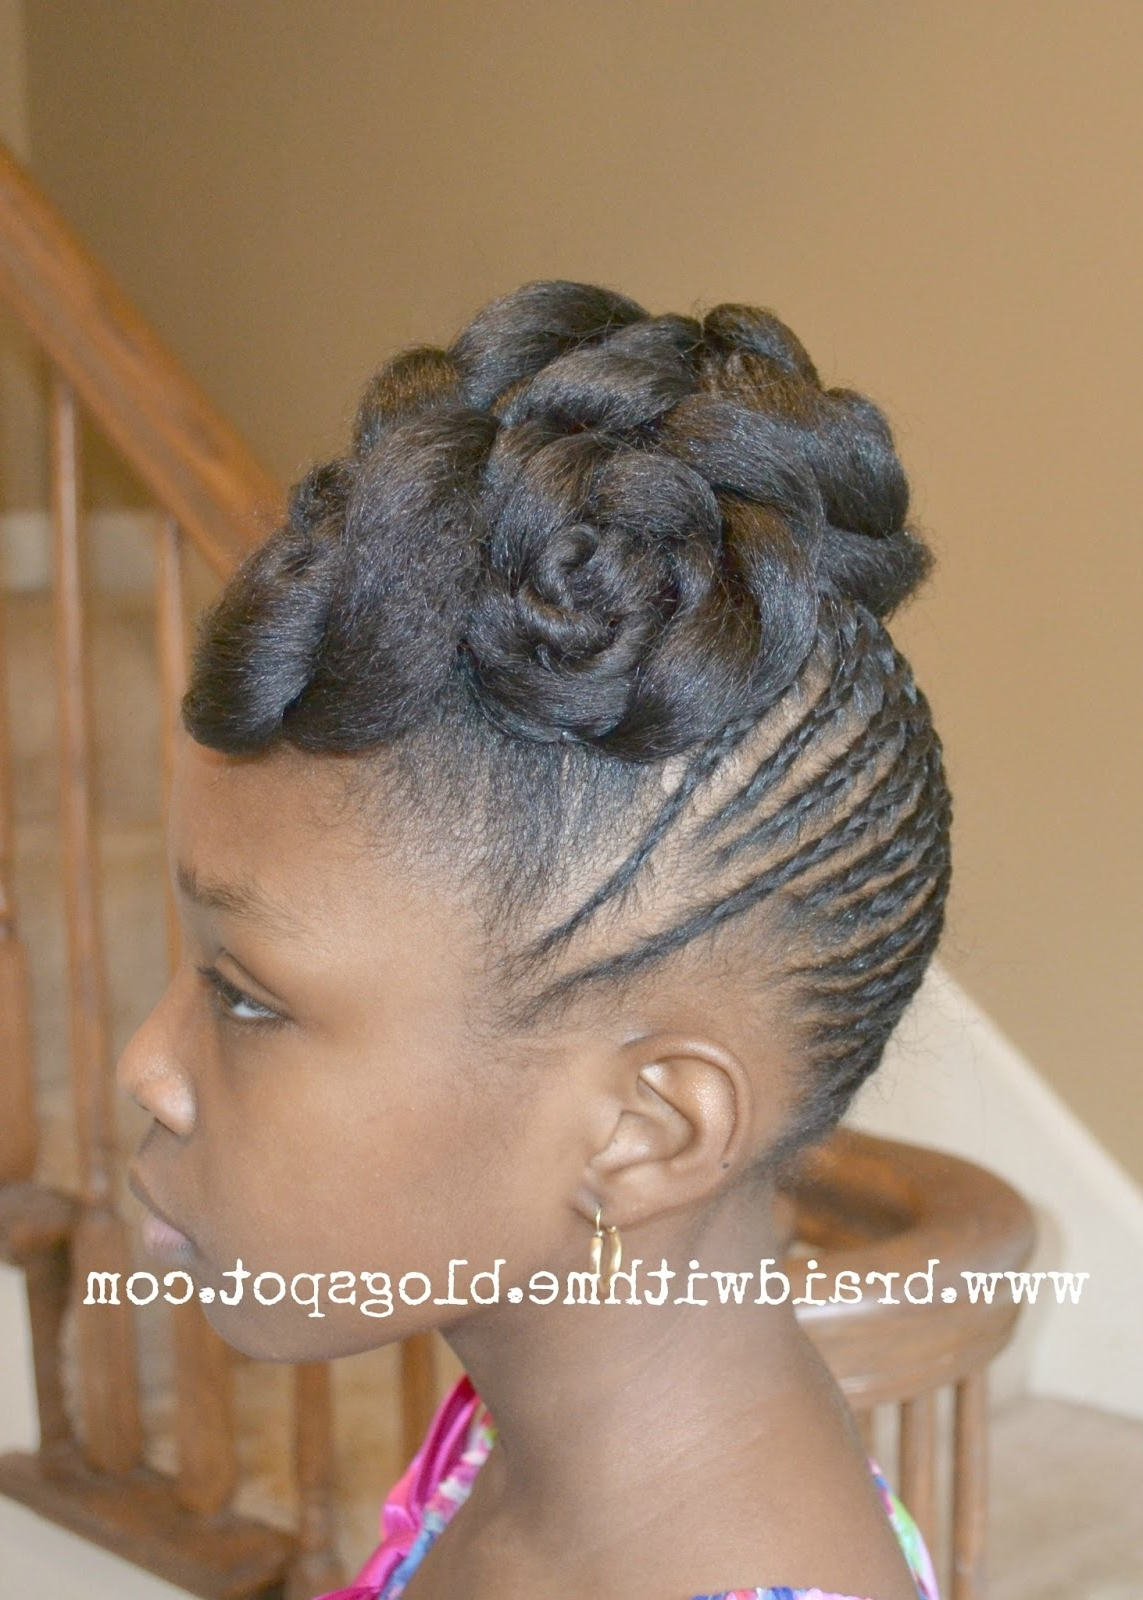 Well Liked Updo Black Braided Hairstyles Inside Updo Black Braided Hairstyles (View 15 of 15)